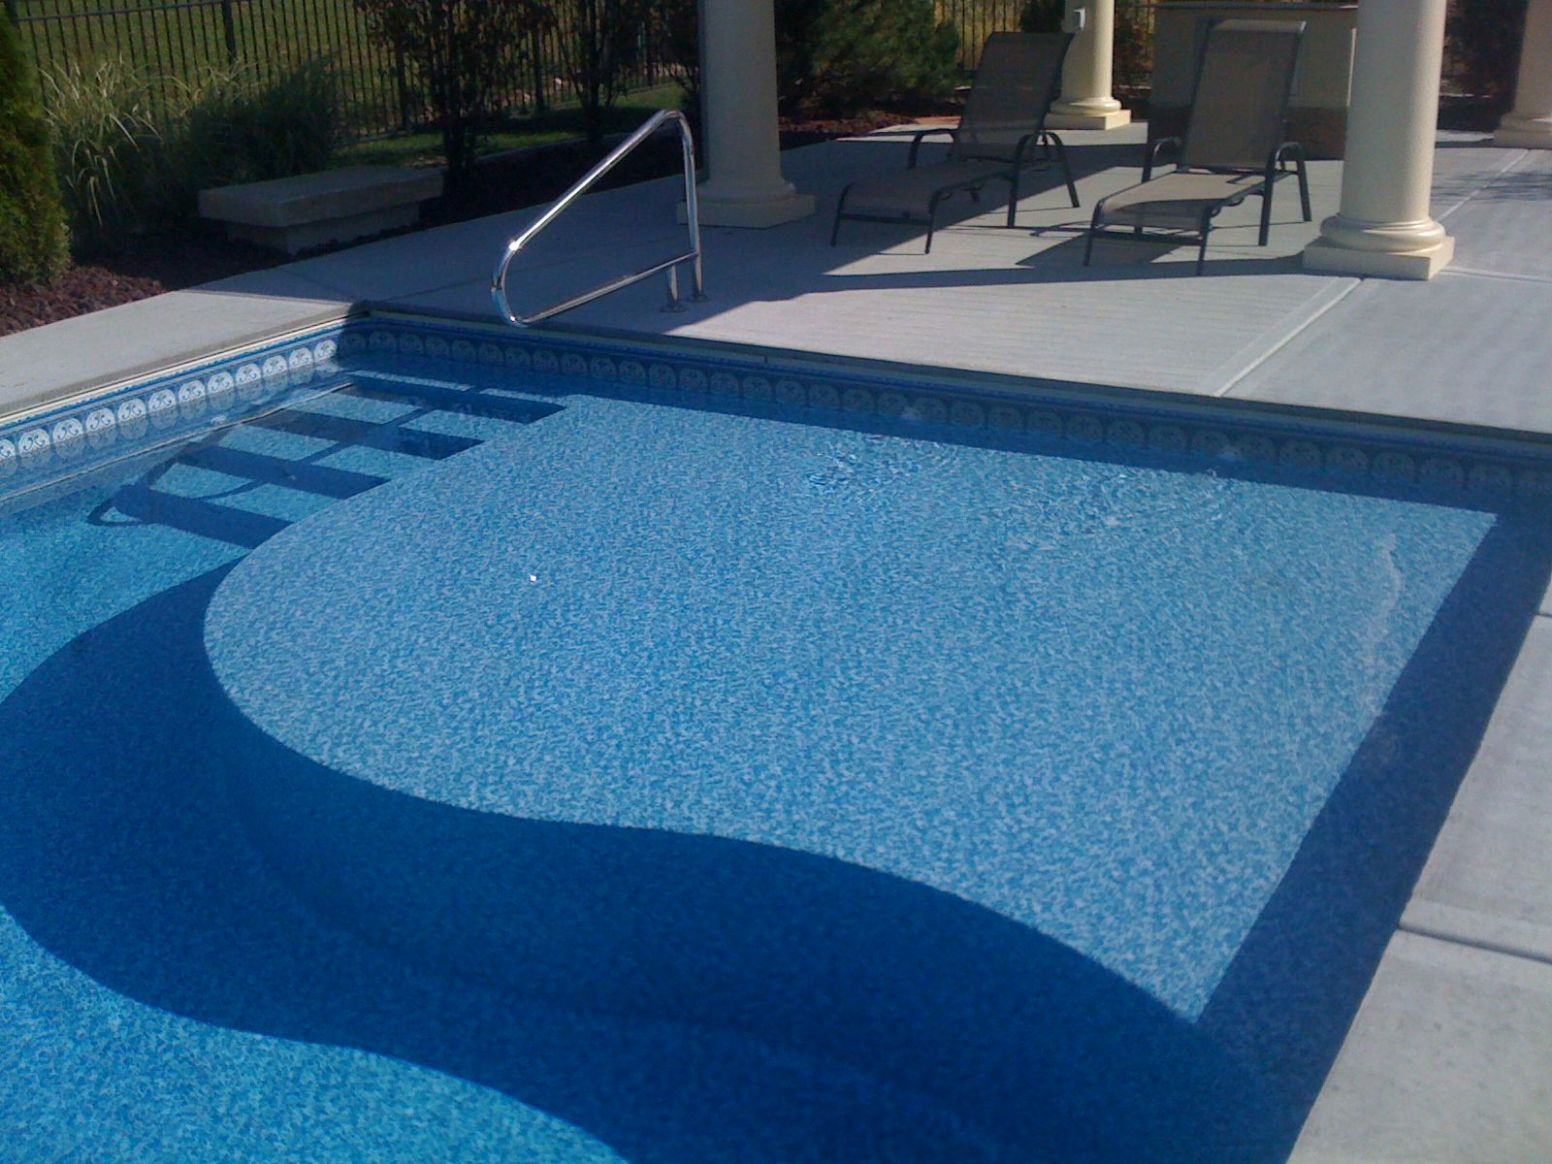 A Tanning Ledge in a pool designed and built by Caribbean Pools ...